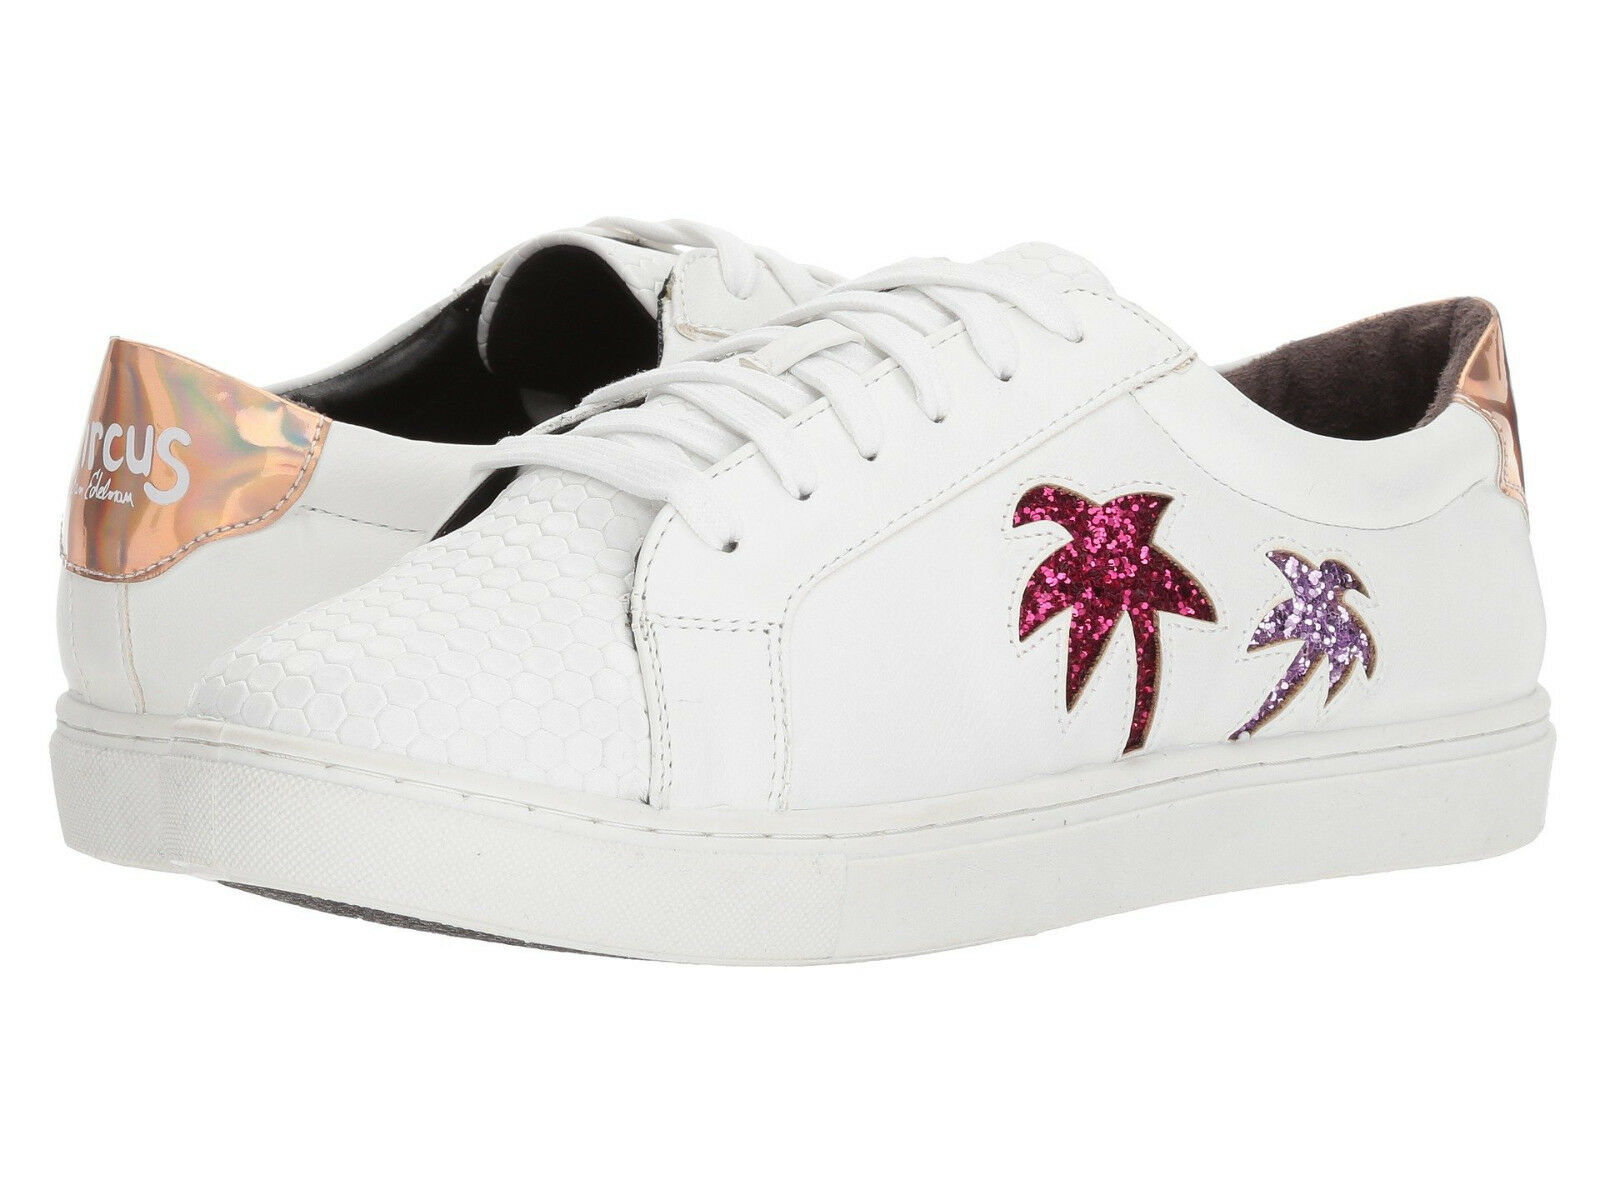 Circus by Sam Edelman Vanellope White Pink Palm Trees shoes 8.5